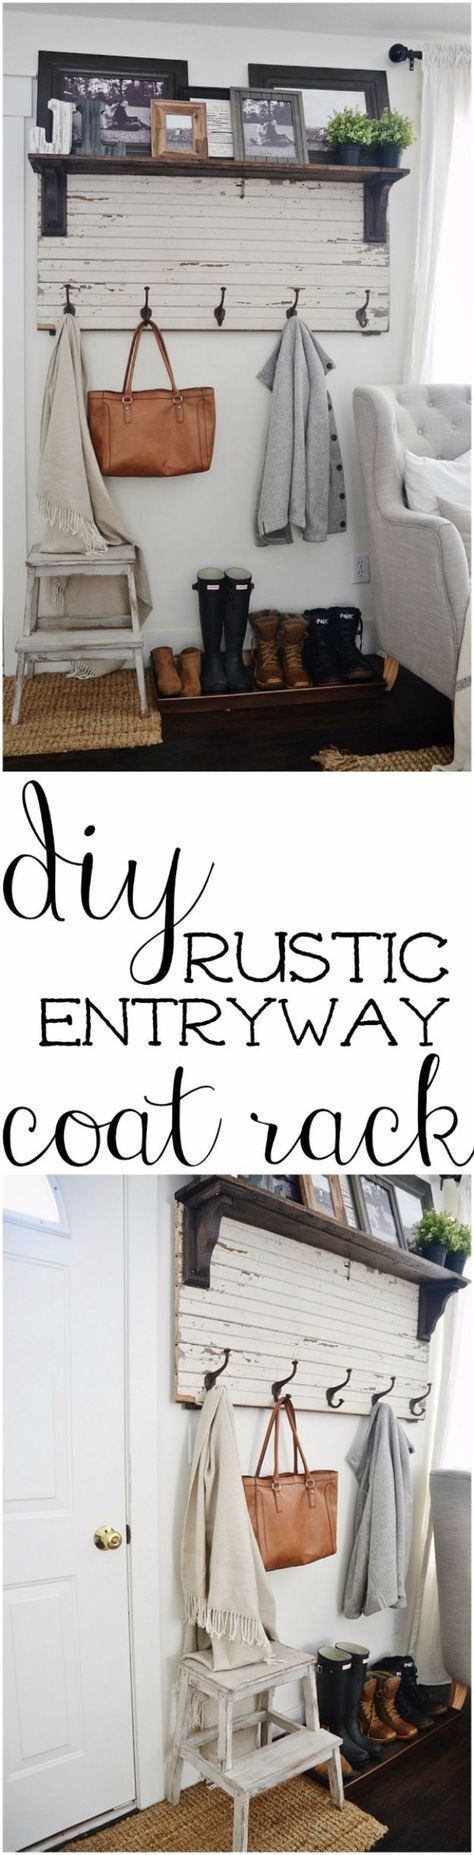 37 cool country decor ideas that will look good in your home - country house ideas -  37 Cool Country Decor Ideas That Will Look Good In Your Home 37 Cool Country Decor Ideas That Will  - #cool #country #CountryDecor #CountryFarmhouseDecor #decor #good #home #house #Ideas #PrimitiveCountryDecorating #PrimitiveDecor